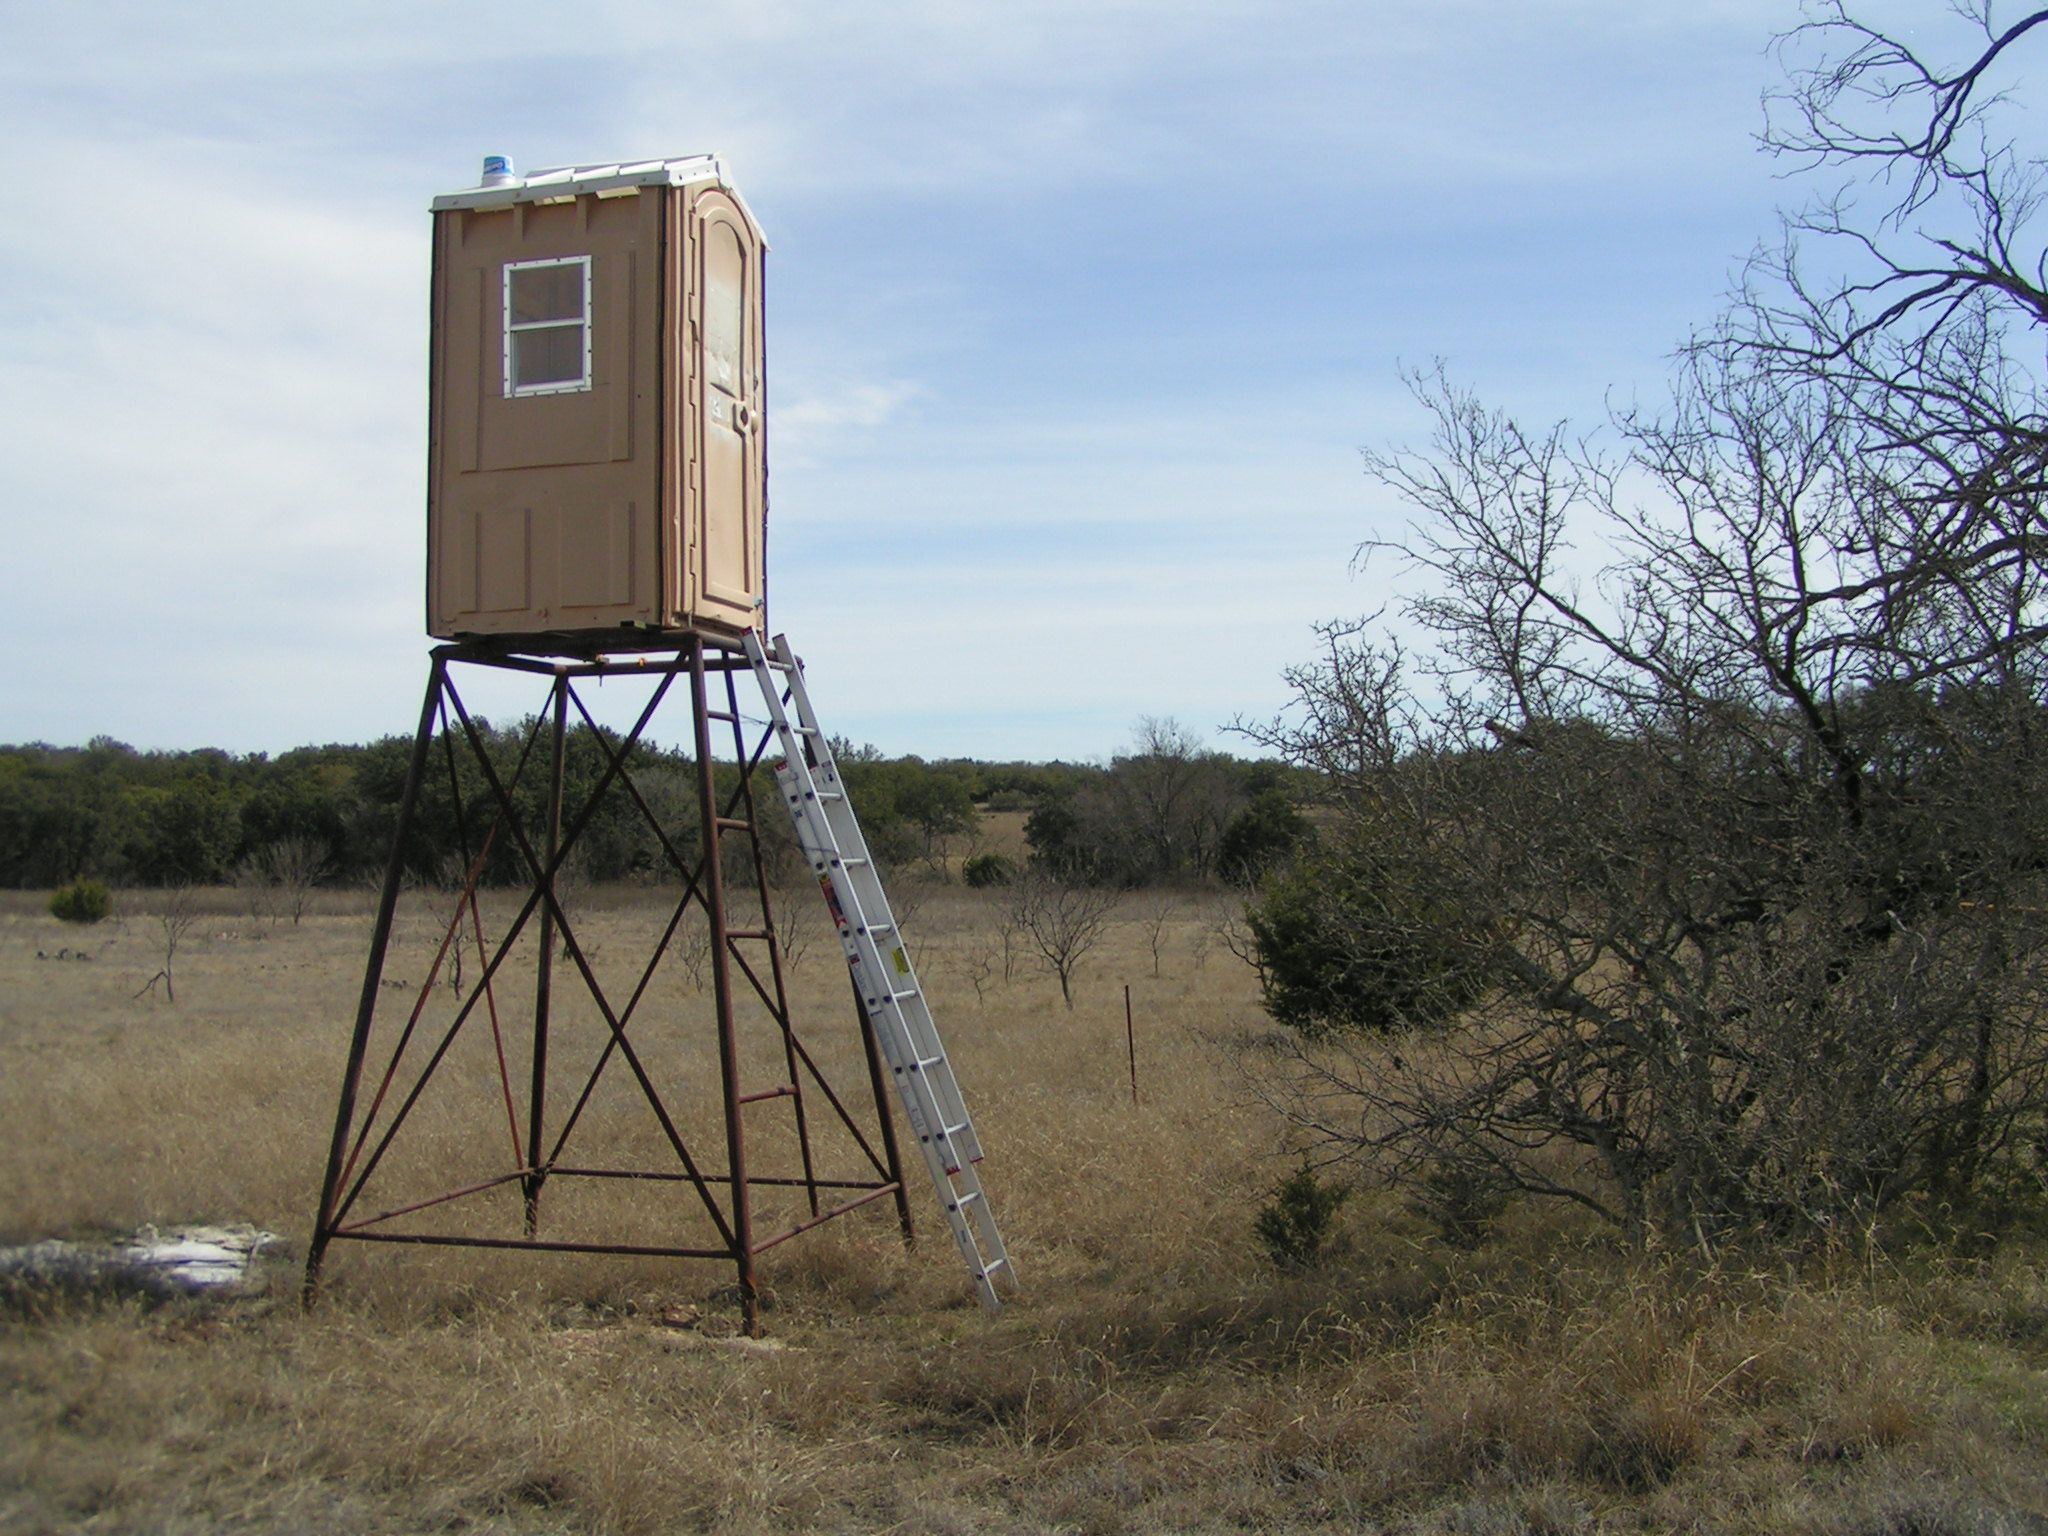 deer ideas blinds and agriculture observations inspiration texas in sale for